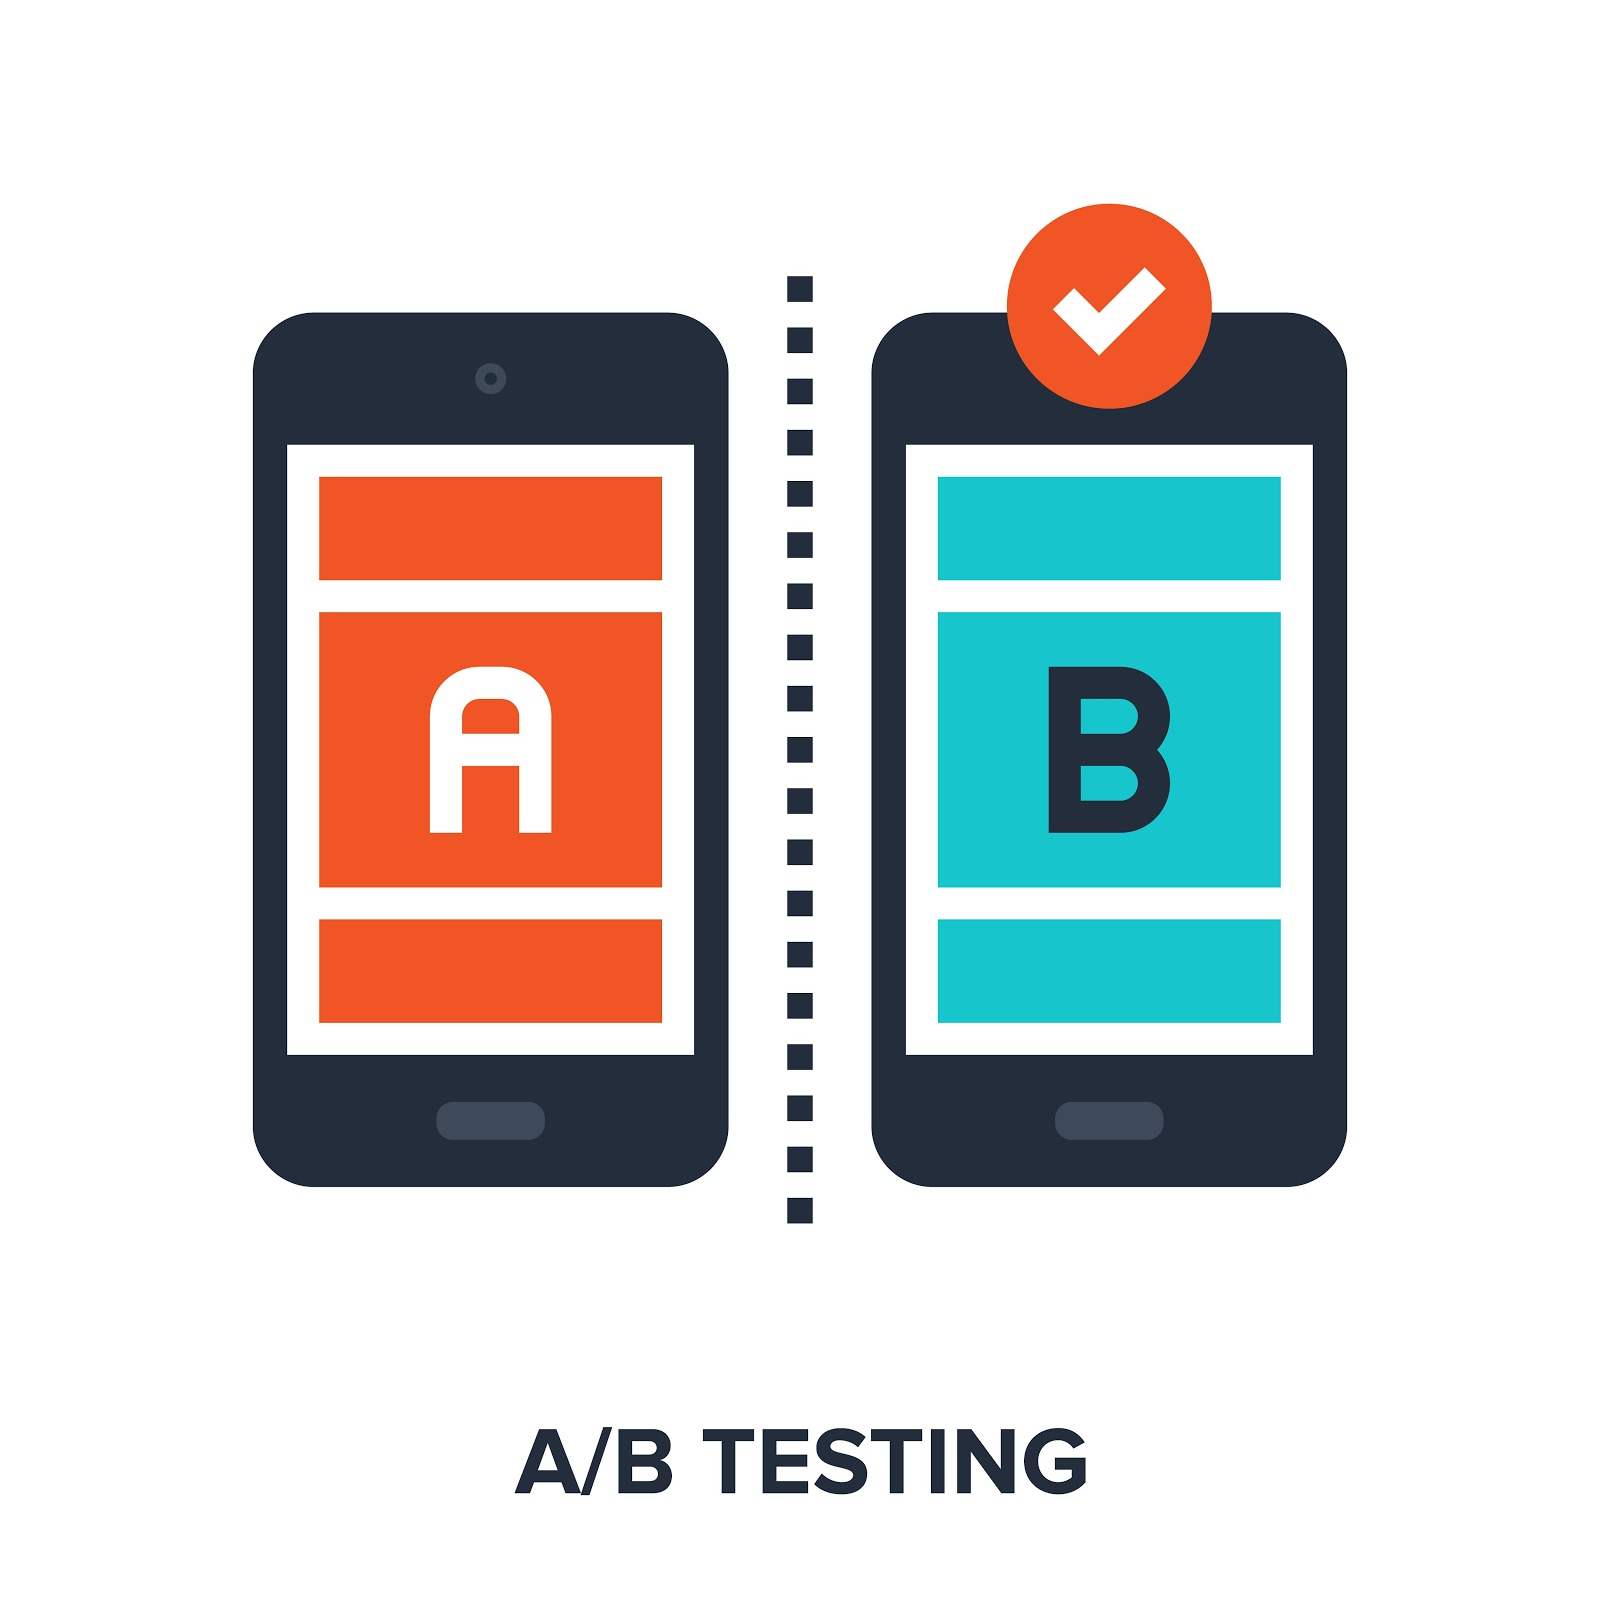 Two mobile phones representing A/B testing between Unbounce vs Leadpages vs Instapage.